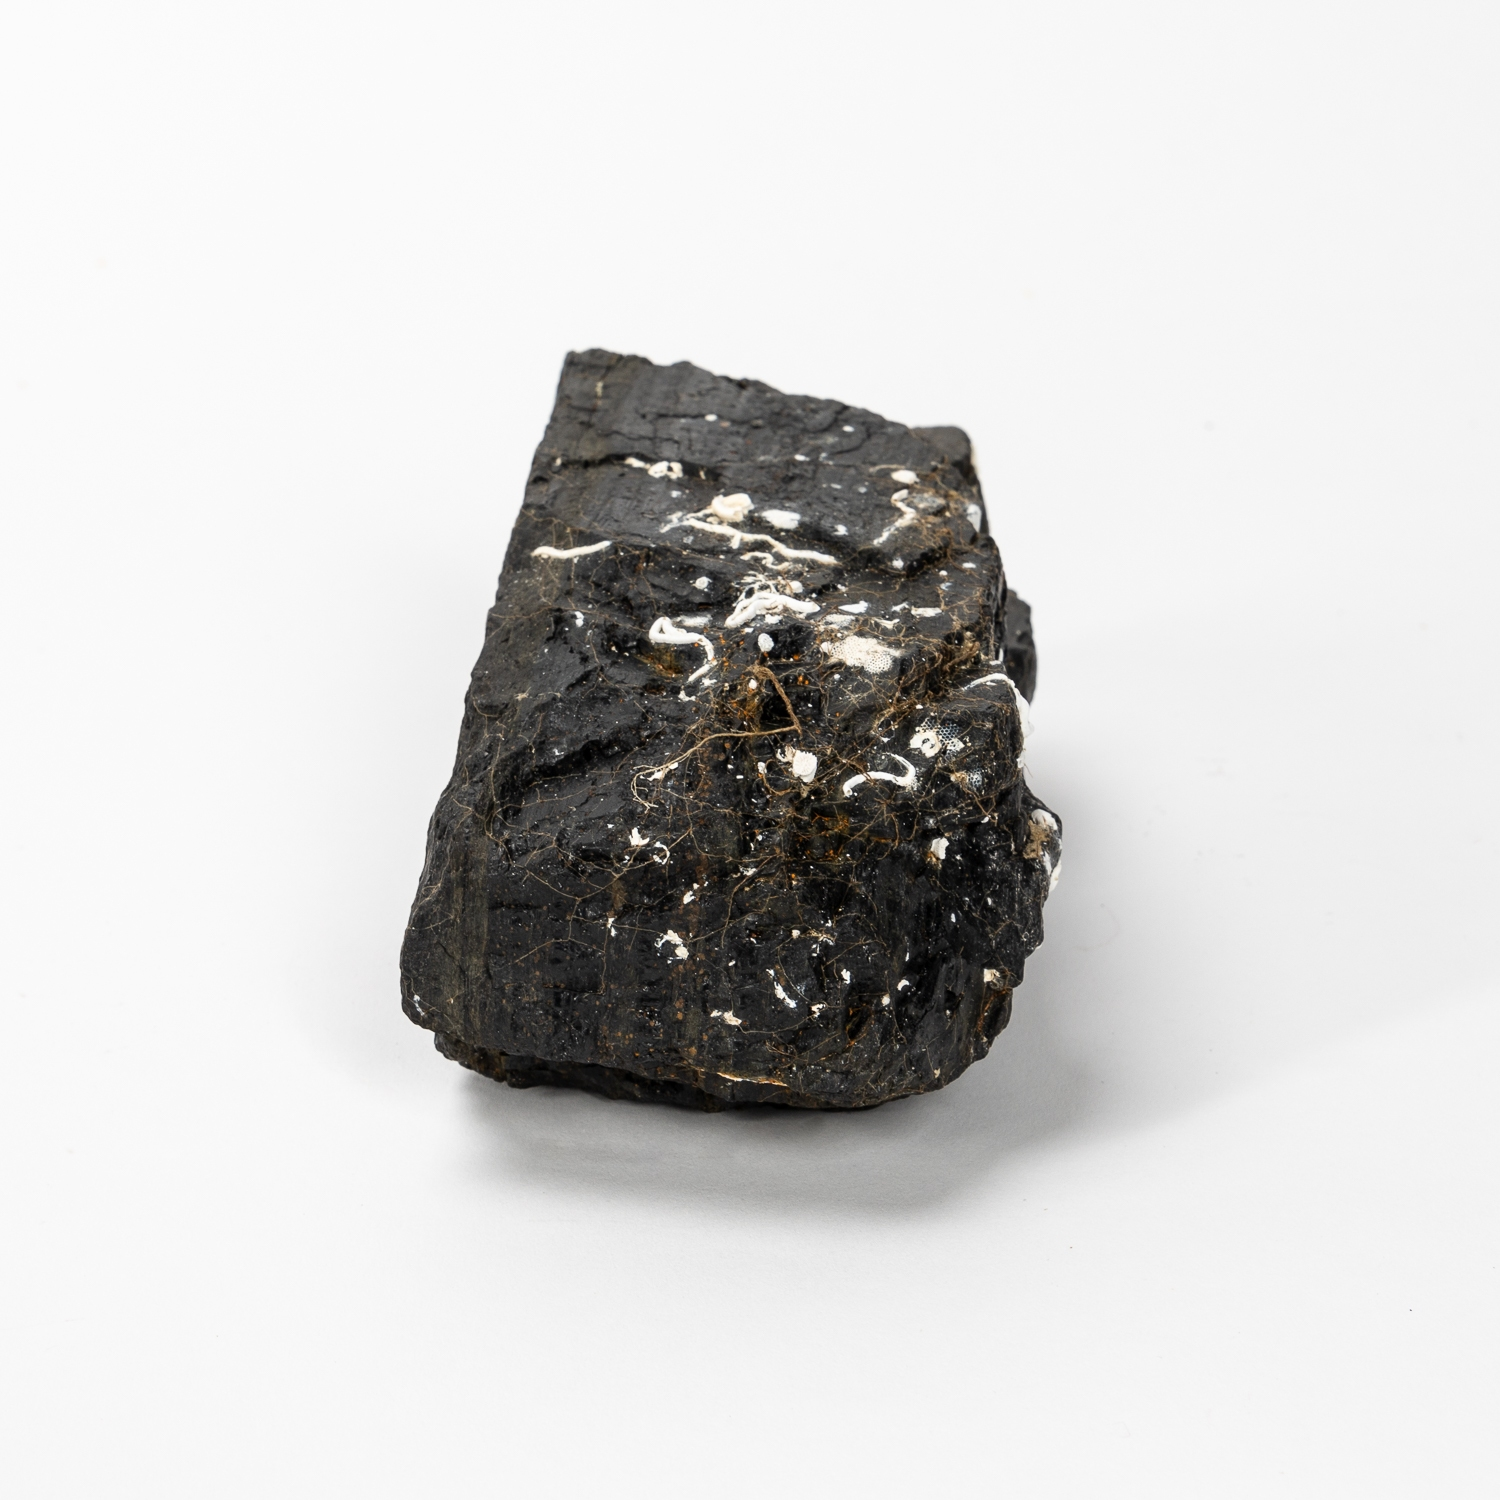 RMS CARPATHIA, SALVAGED SINGLE PIECE OF COAL - Image 3 of 5